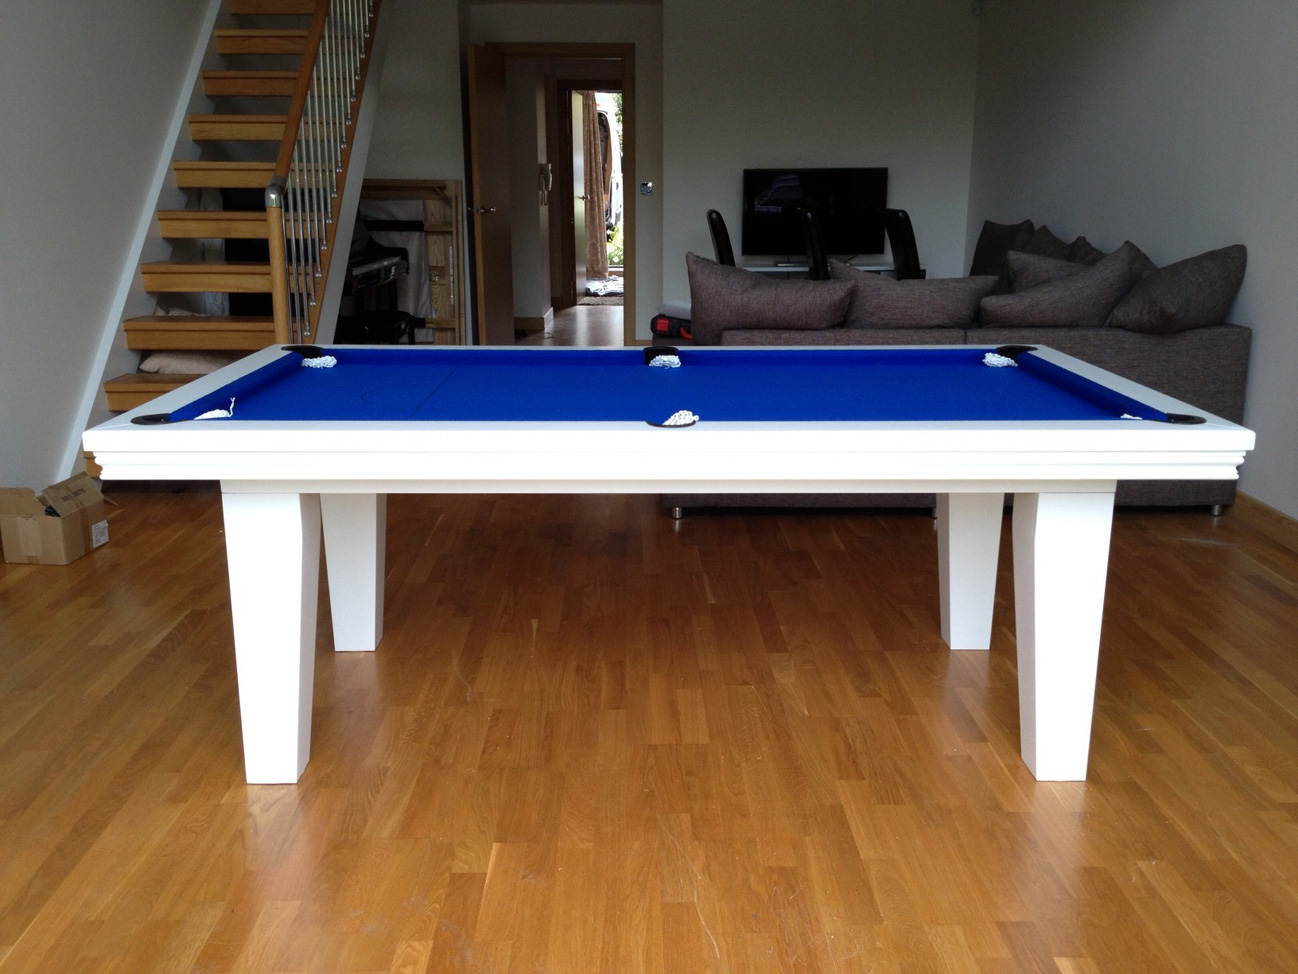 Pool Dining Table In White Blue Snooker Pool Tables - Pool dining table 7ft